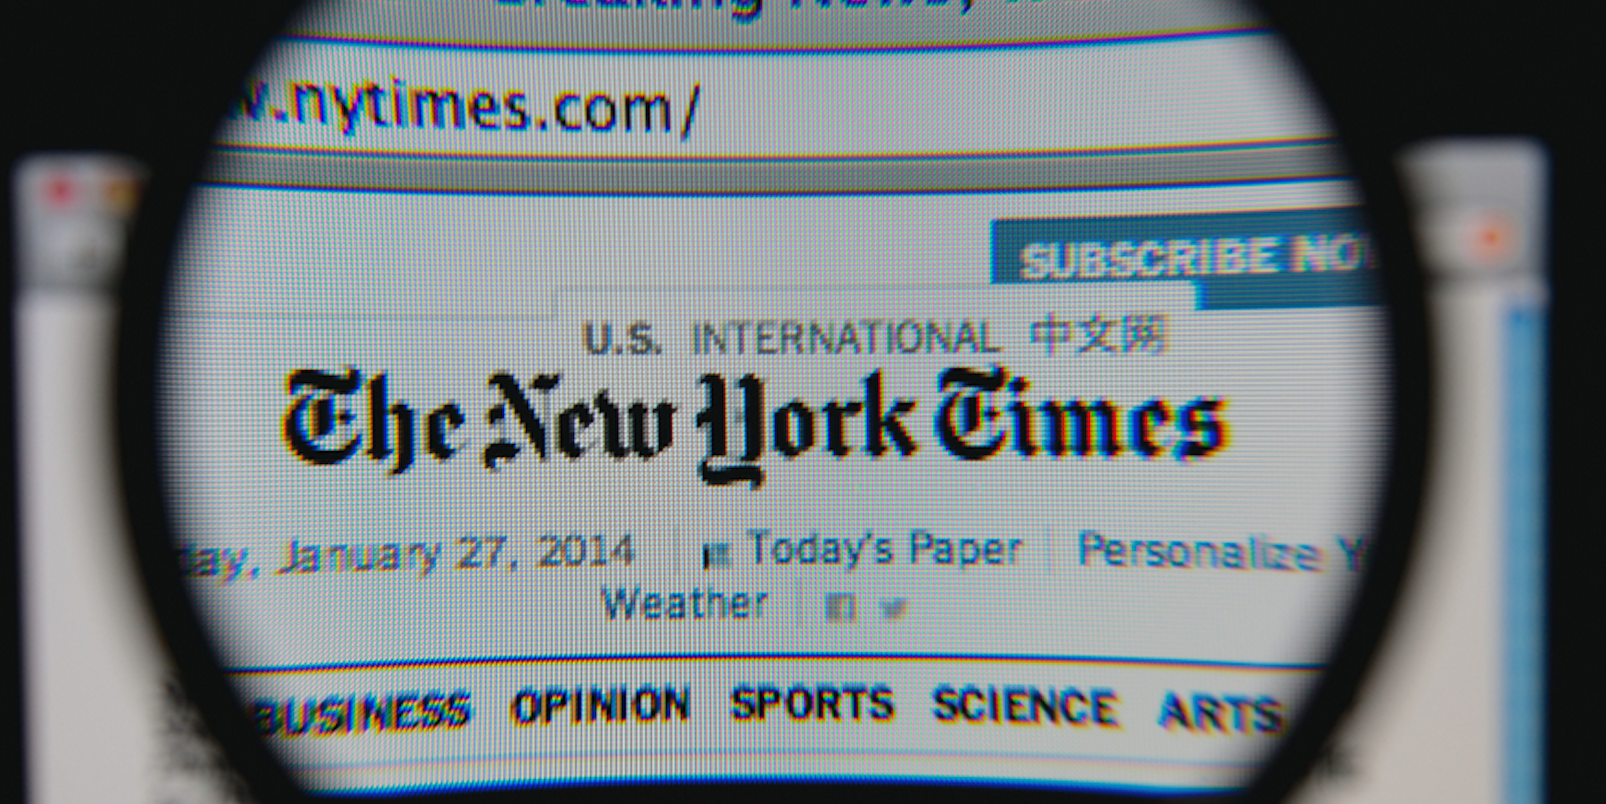 The New York Times Crossword As of December 31, , we will no longer be supporting the Windows app for NYTimes Crossword. The Windows app will be removed from the Windows app store, and while it may continue to work as-is, it will no longer be updated or supported.